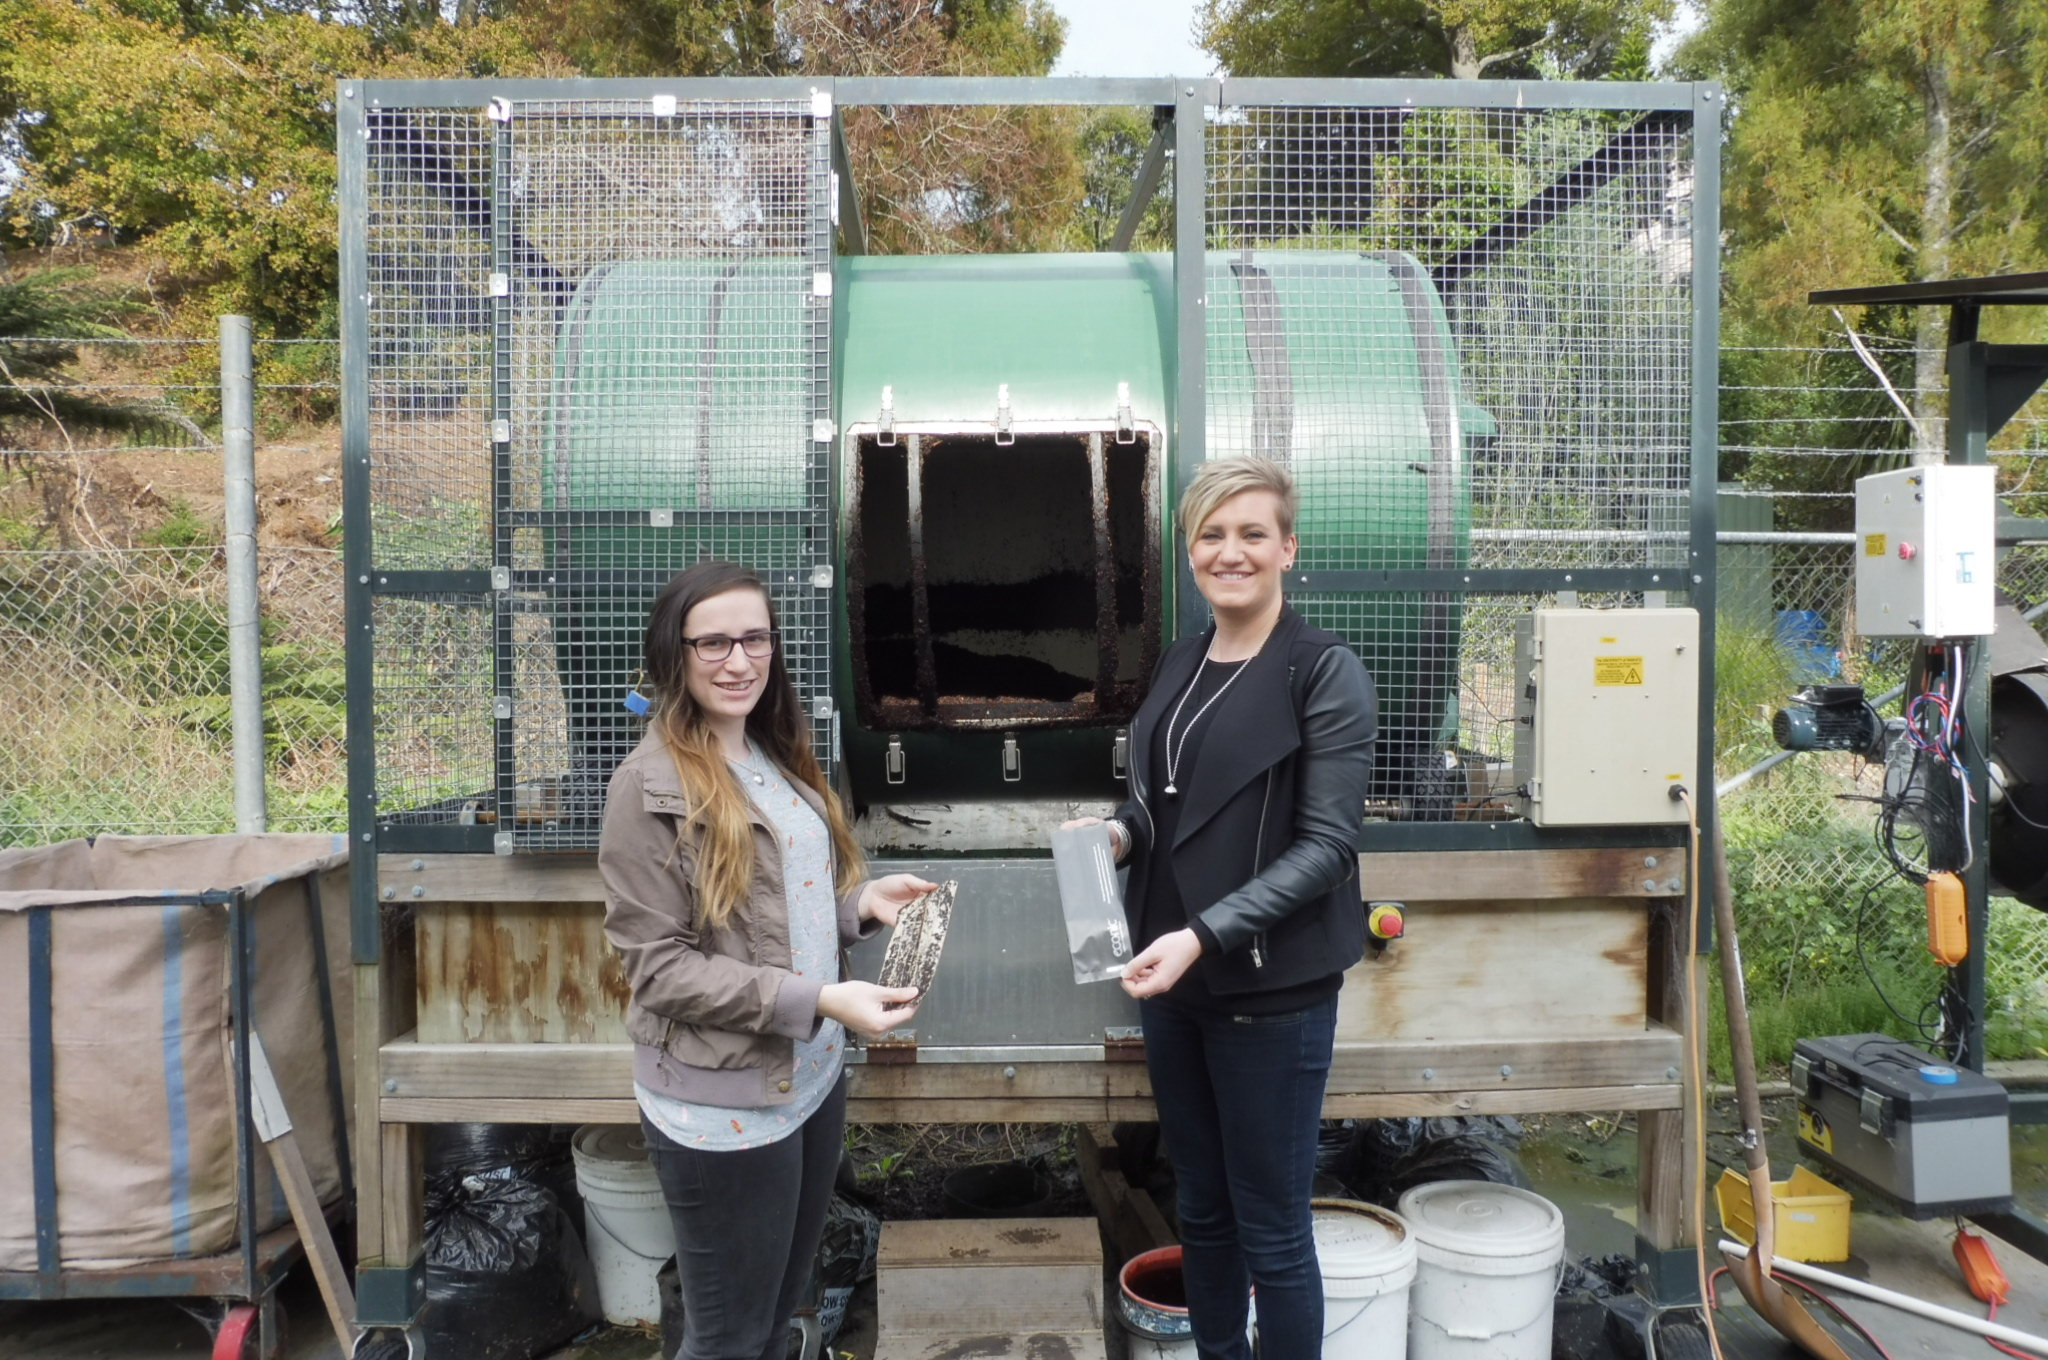 Convex Lab Assistant Courtney-Ruth Gill (left) comparing the Econic bag that has been in the composter for several weeks with the non-composted Econic bag that Convex Lab Manager Crystal Pope is holding.